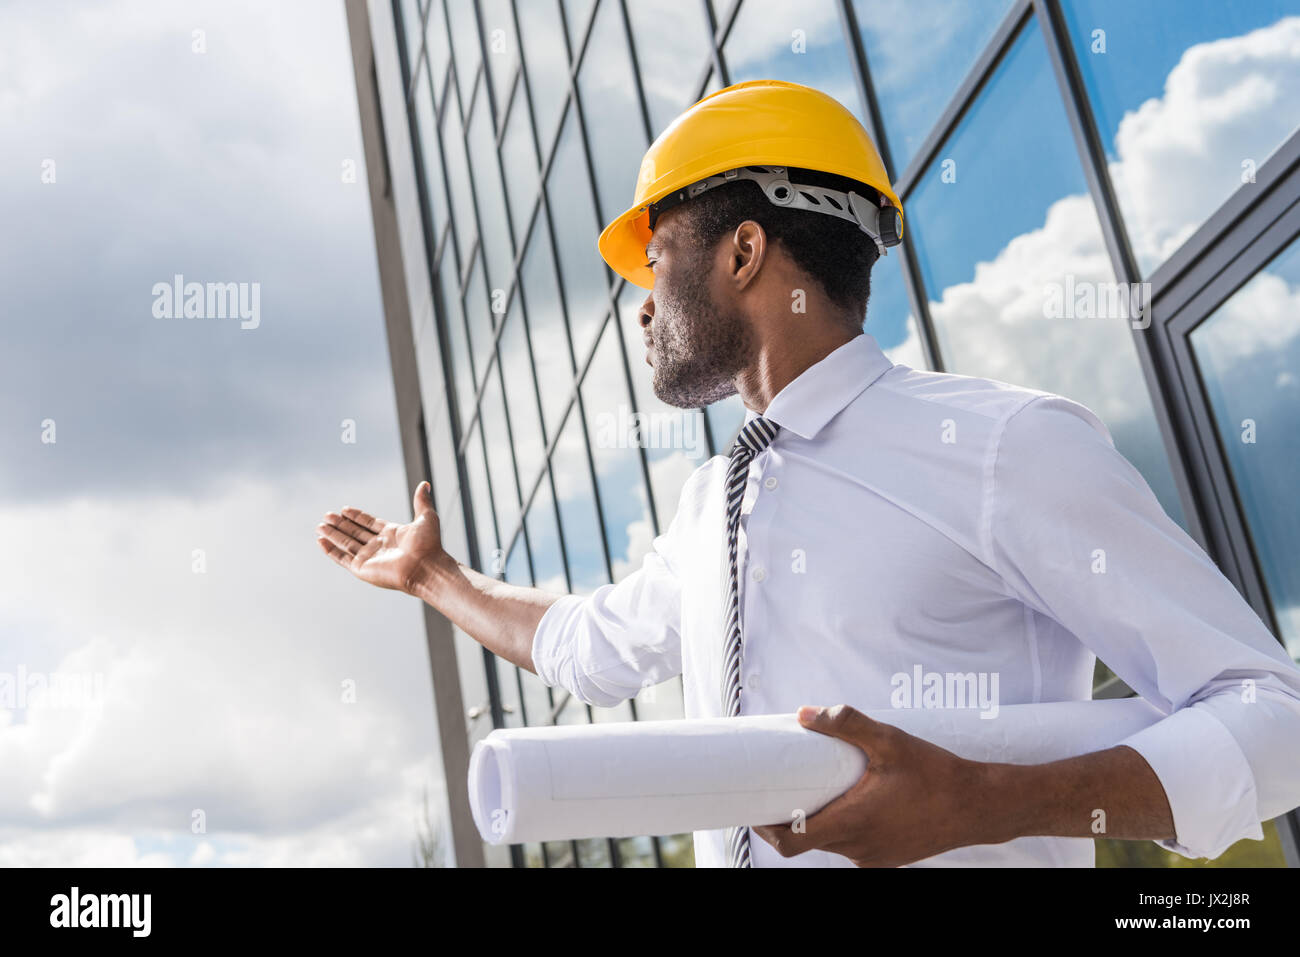 Low angle view of professional architect in hard hat holding blueprint outside modern building - Stock Image